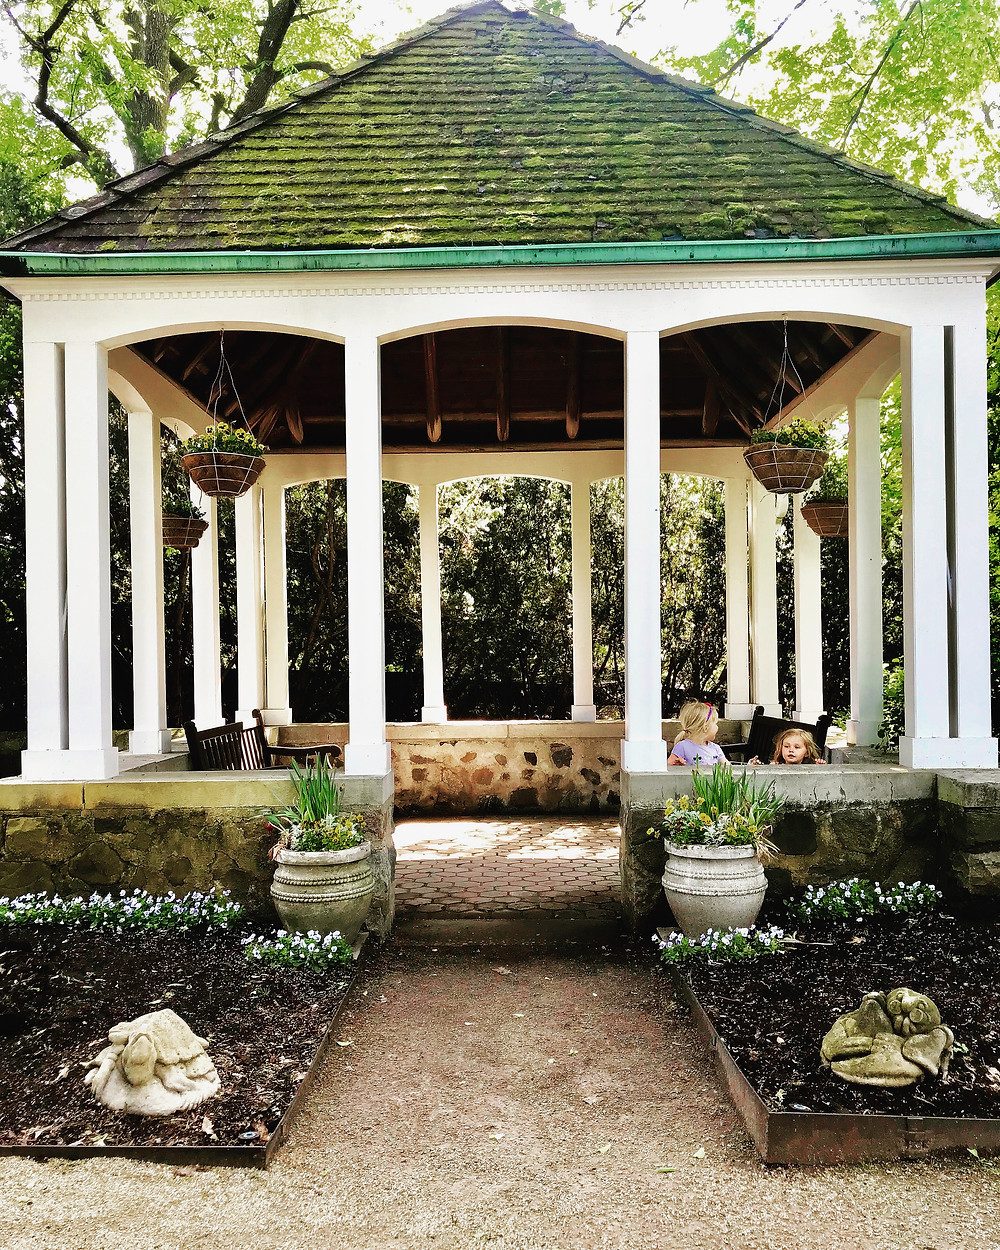 Gazebo at Boerner Botanical Gardens